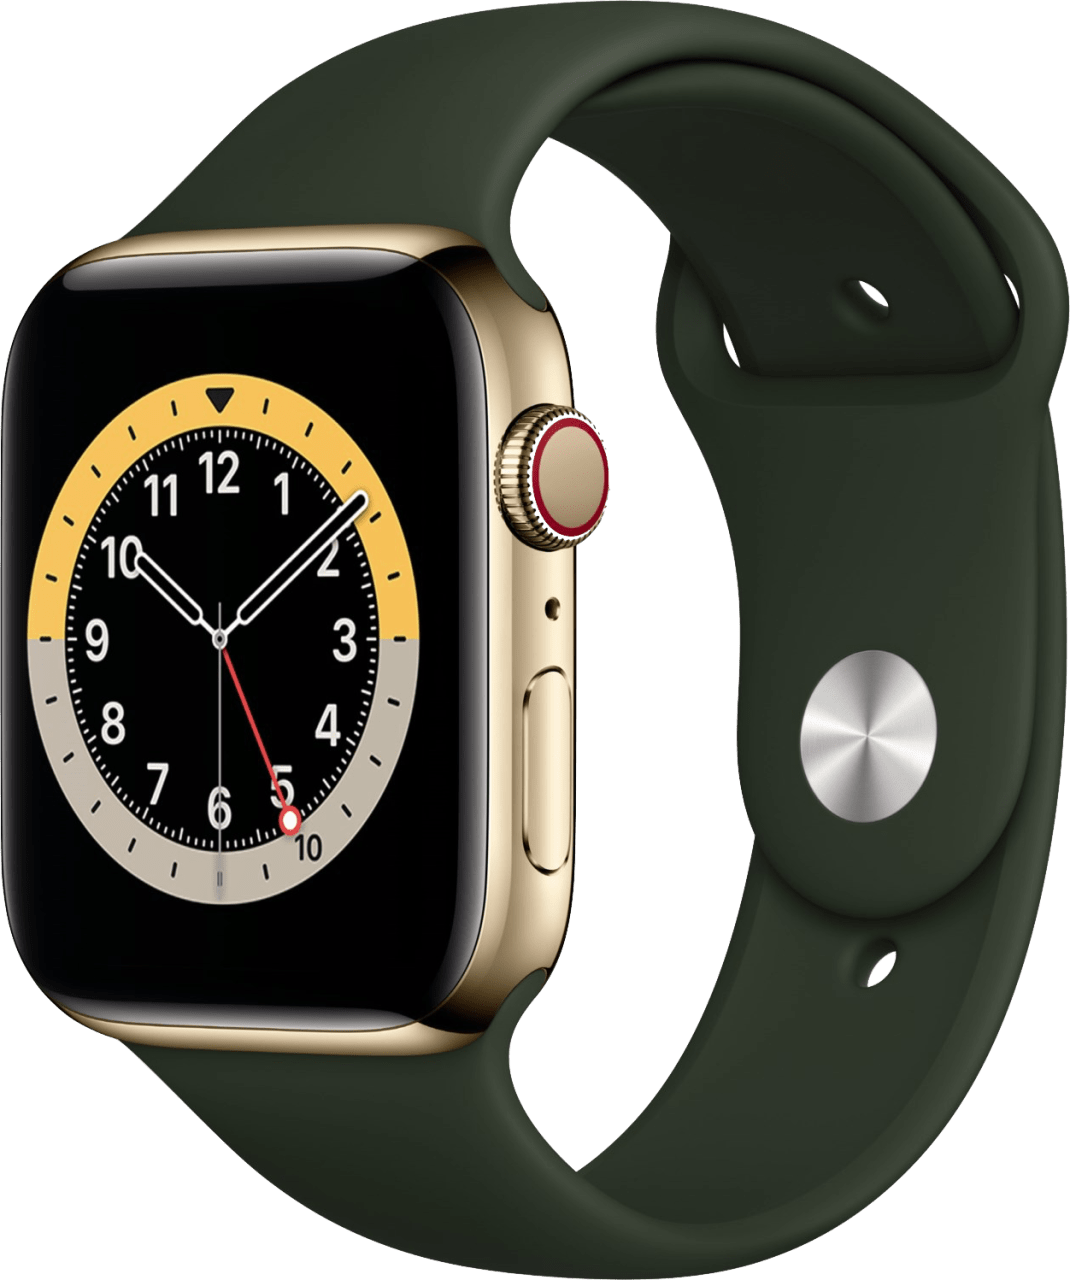 Cyprus green Apple Watch Series 6 GPS + Cellular , 44mm Stainless steel case, Sport band.1